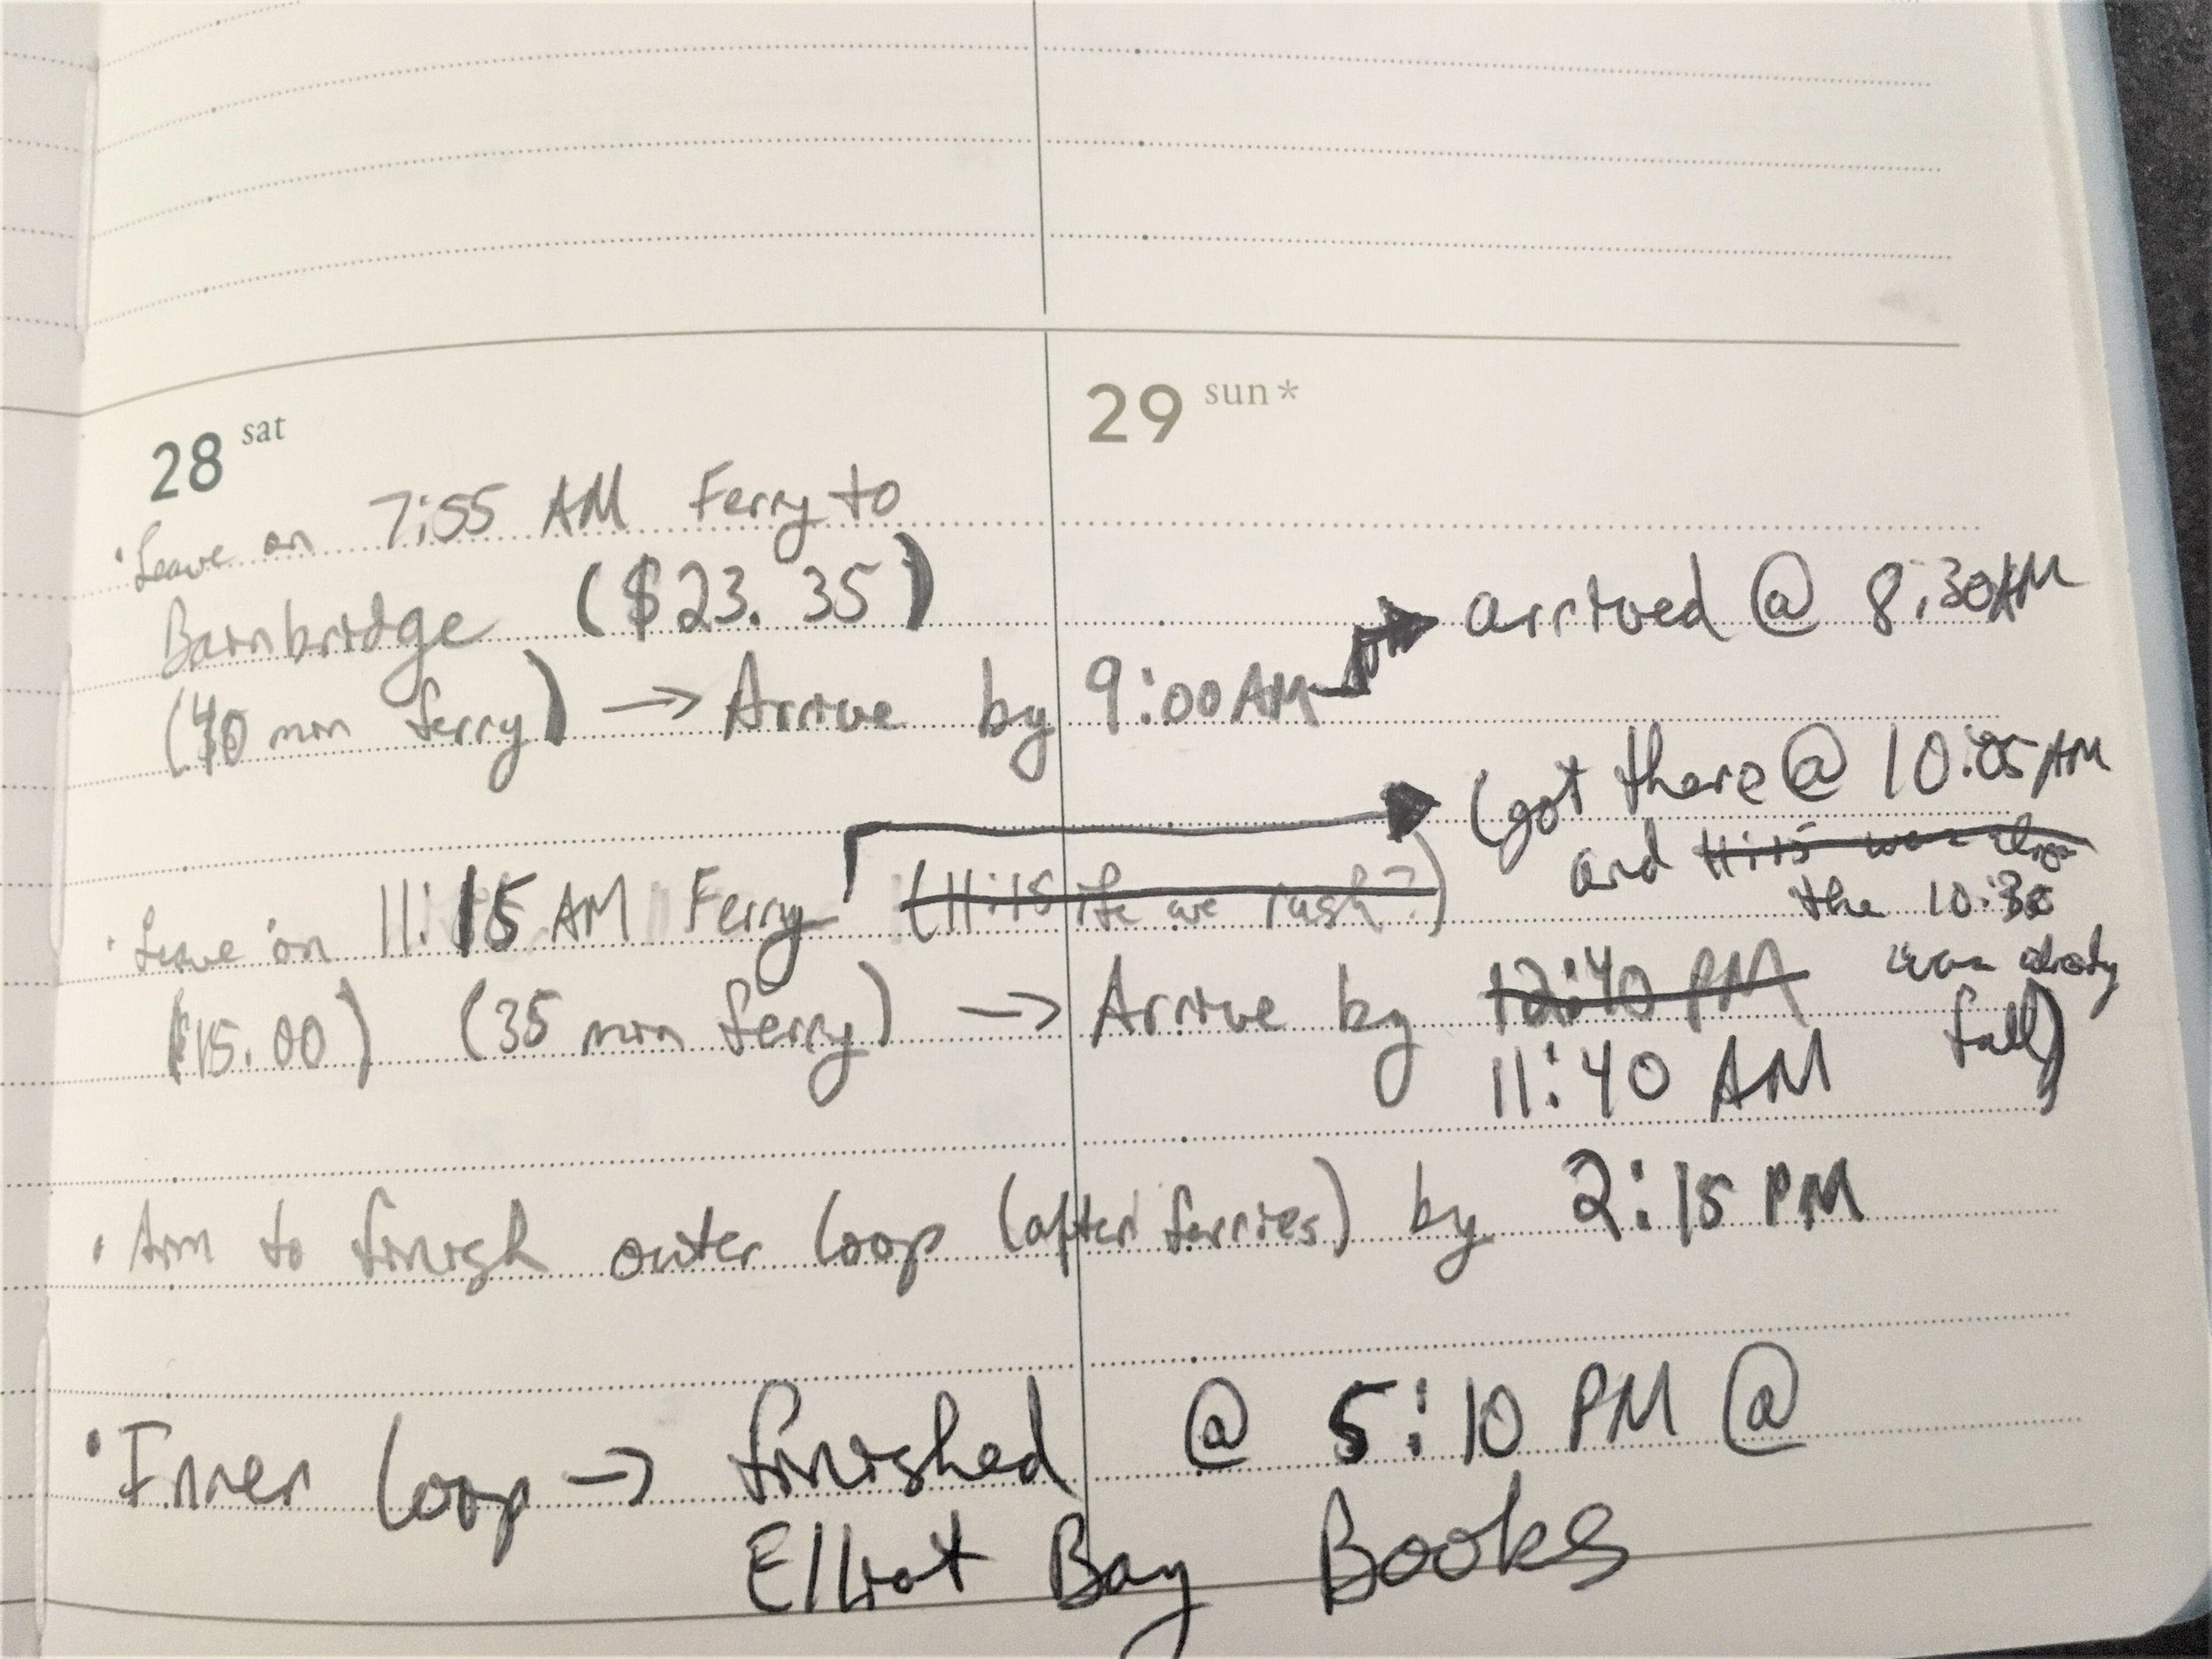 My incredibly basic timeline from last year, with notes added throughout the day. It's proof that you don't have to make your timeline super neat or complicated in order for it to be useful.